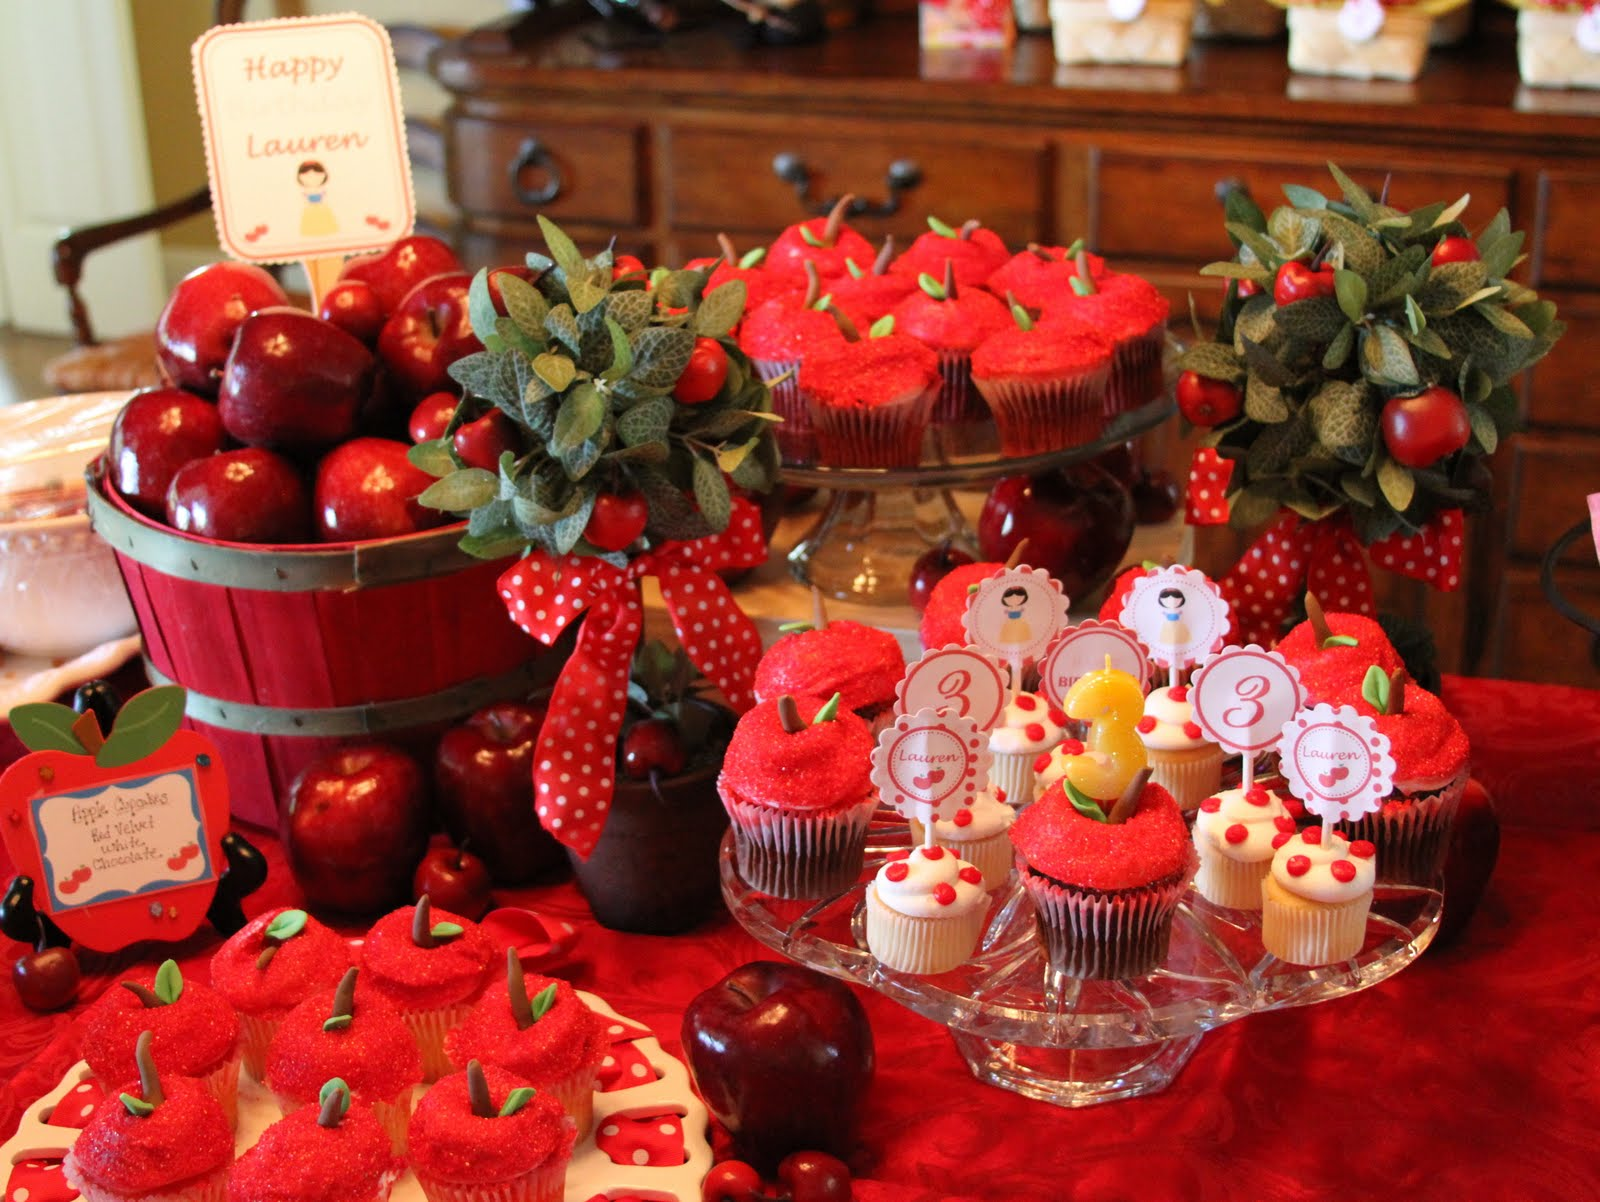 World of arts for children snow white party ideas for Apples decoration